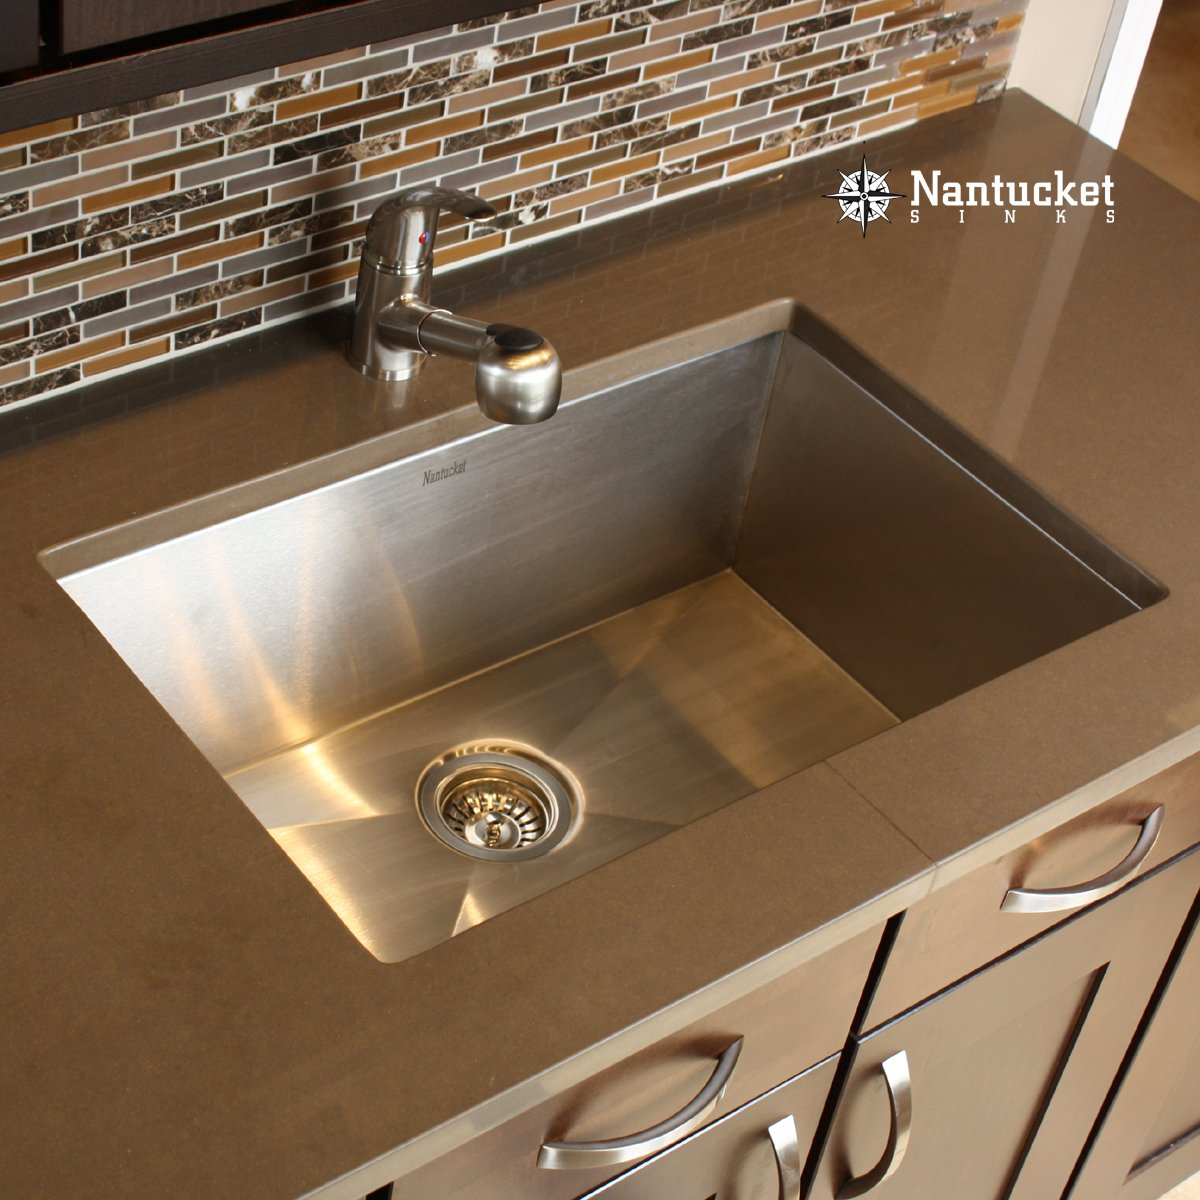 nantucket sinks zr281816 28inch pro series single bowl undermount kitchen sink stainless steel amazoncom - Undermount Kitchen Sinks